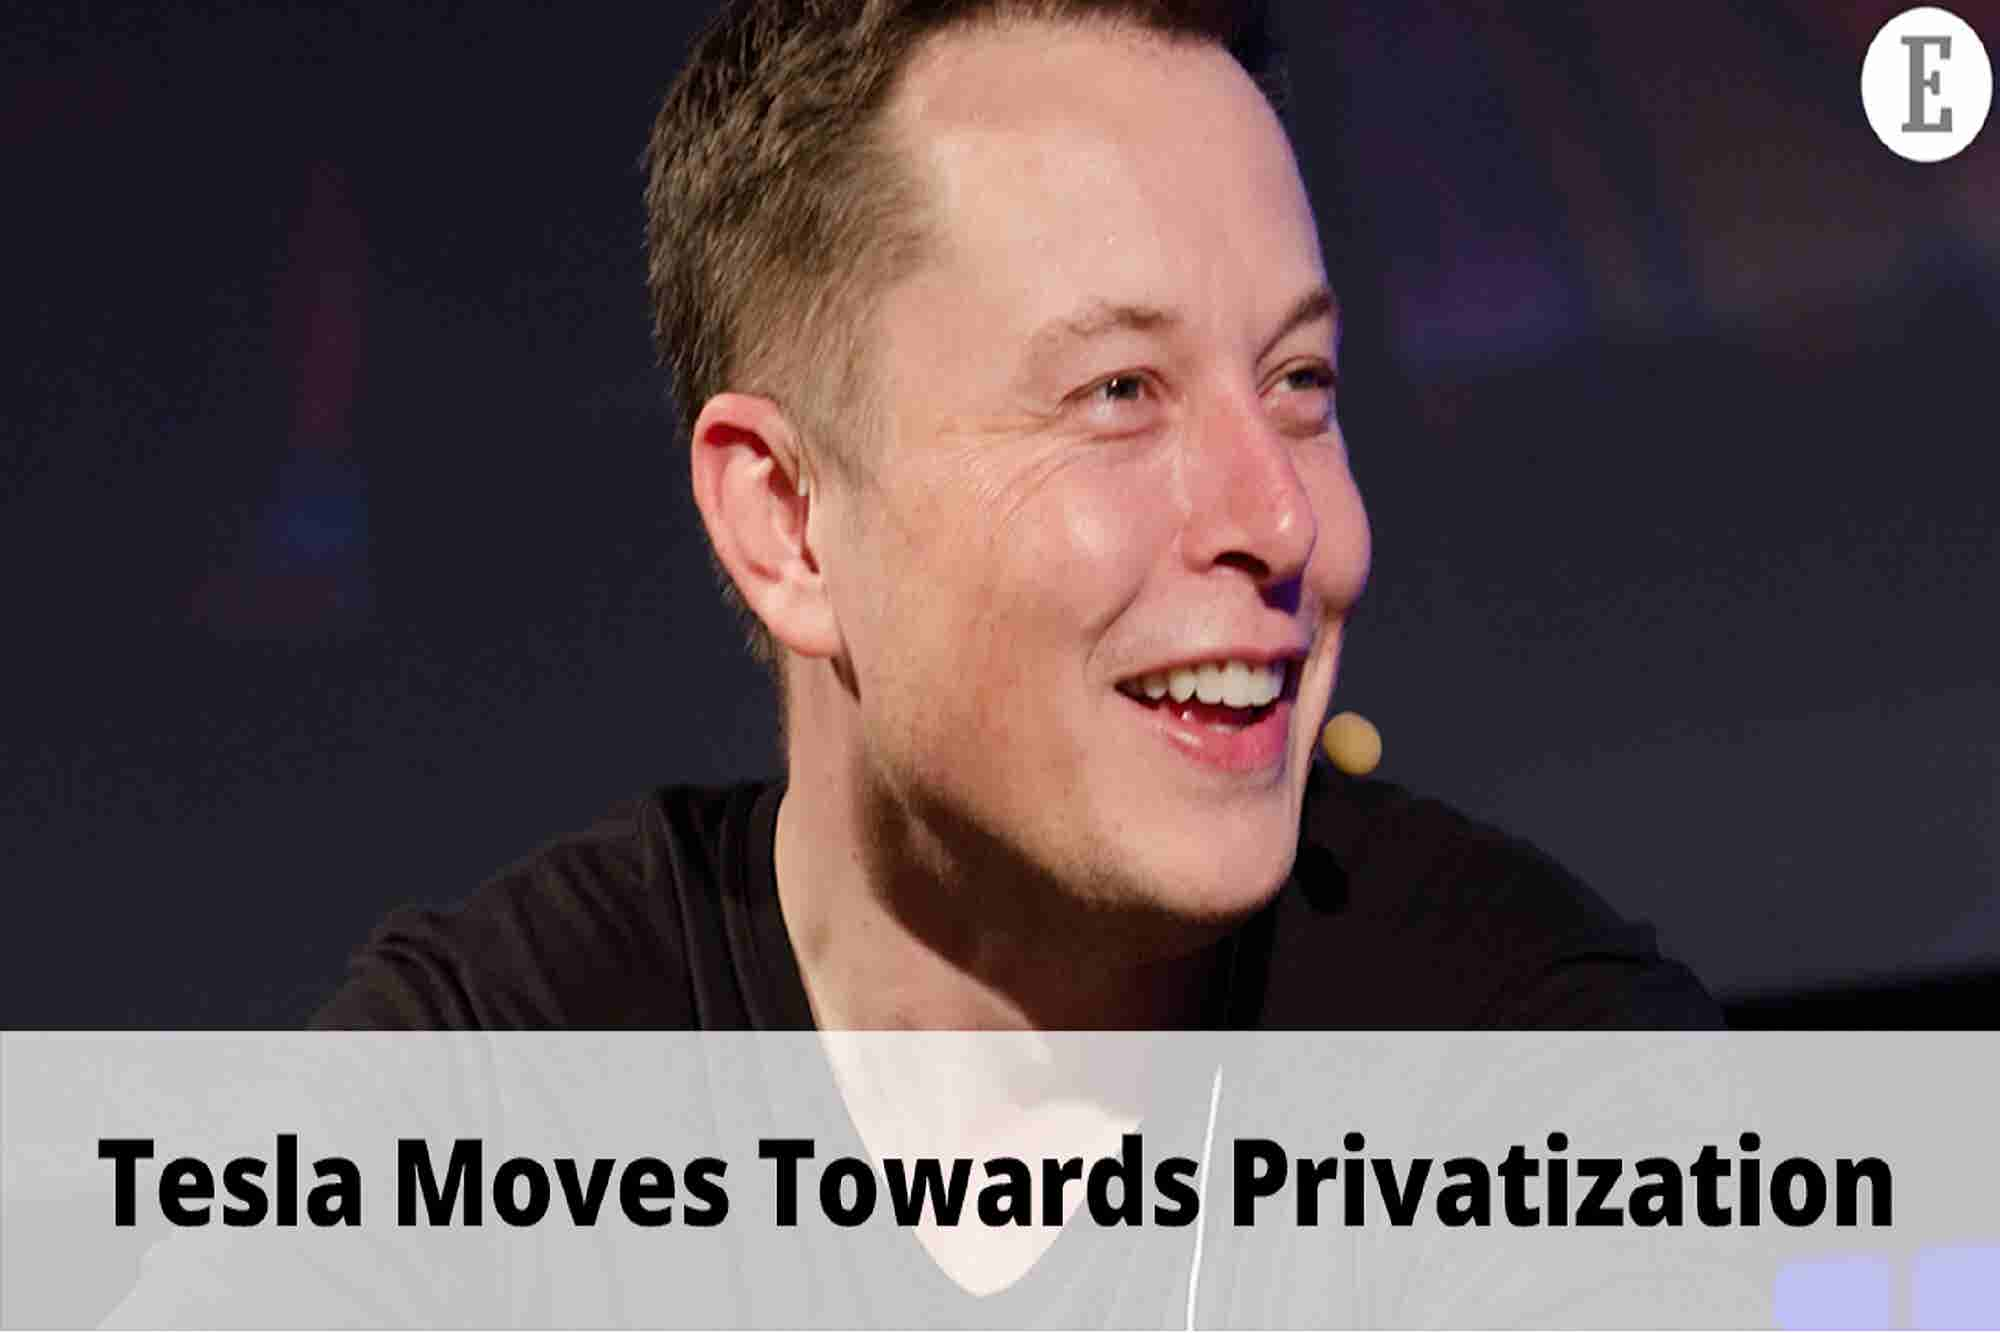 Elon Musk to Take Tesla Private & MS Dhoni is Back For His Second Innings: 4 Things to Know Today